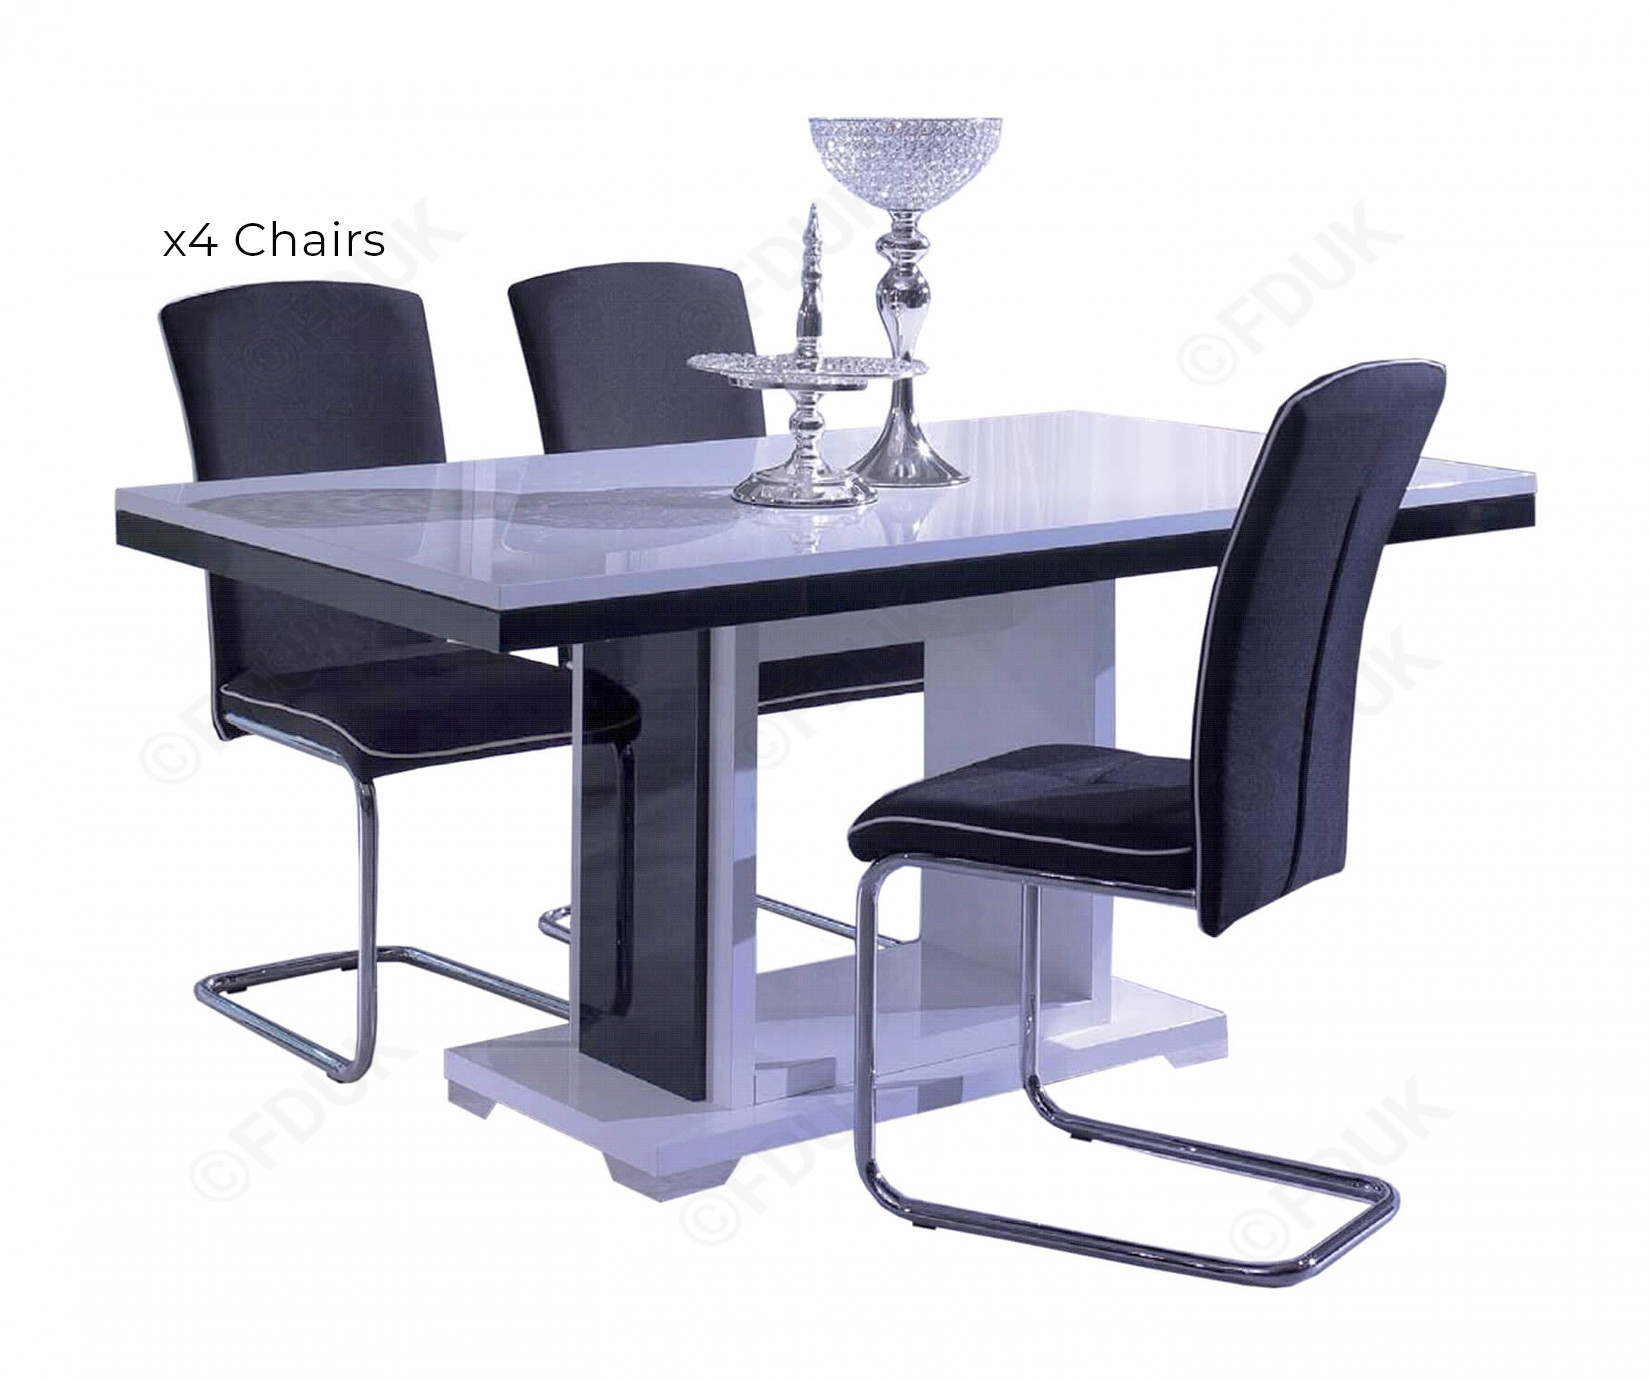 San Martino Blazer Dining Table With 4 Chairs Within Newest Martino Dining Tables (View 8 of 25)